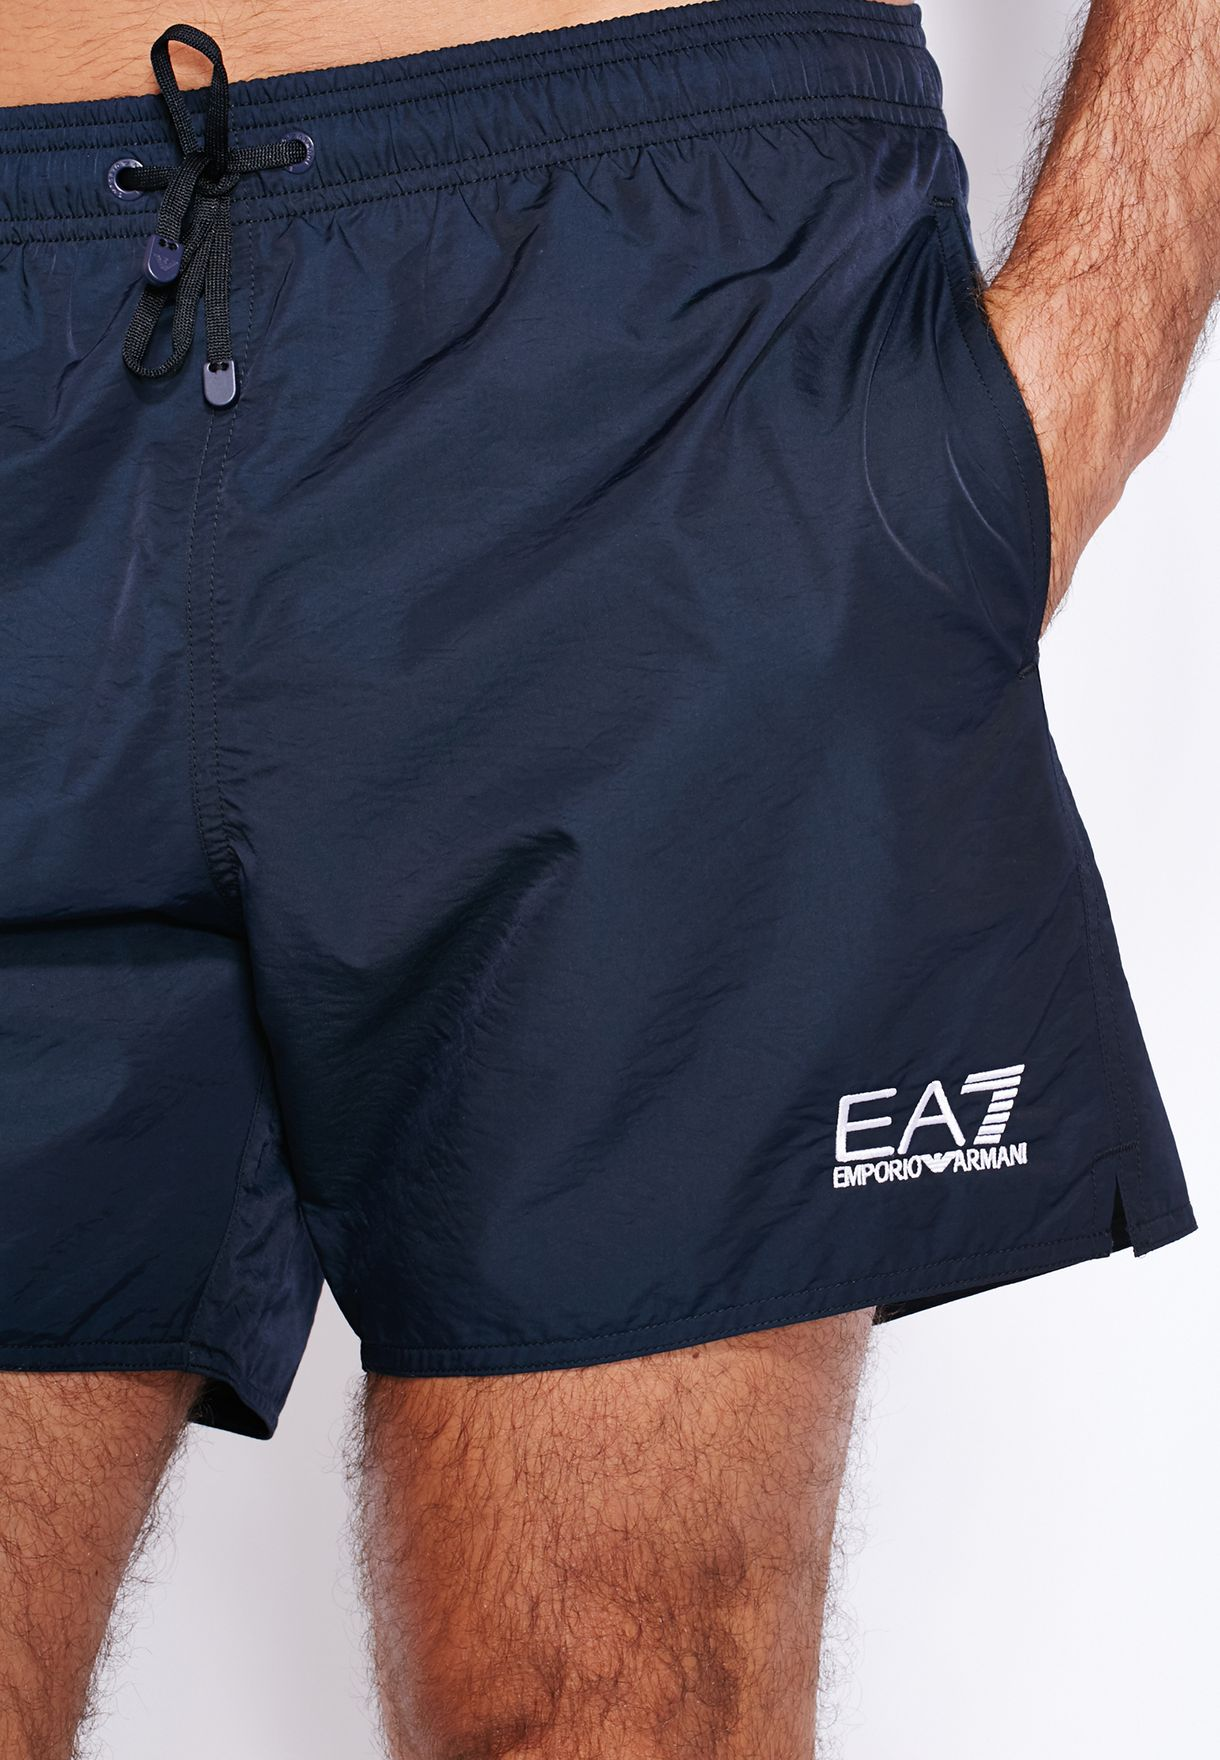 7462a779e11f6 Shop Ea7 Emporio Armani blue Sea World Boxers 902000 for Men in UAE ...